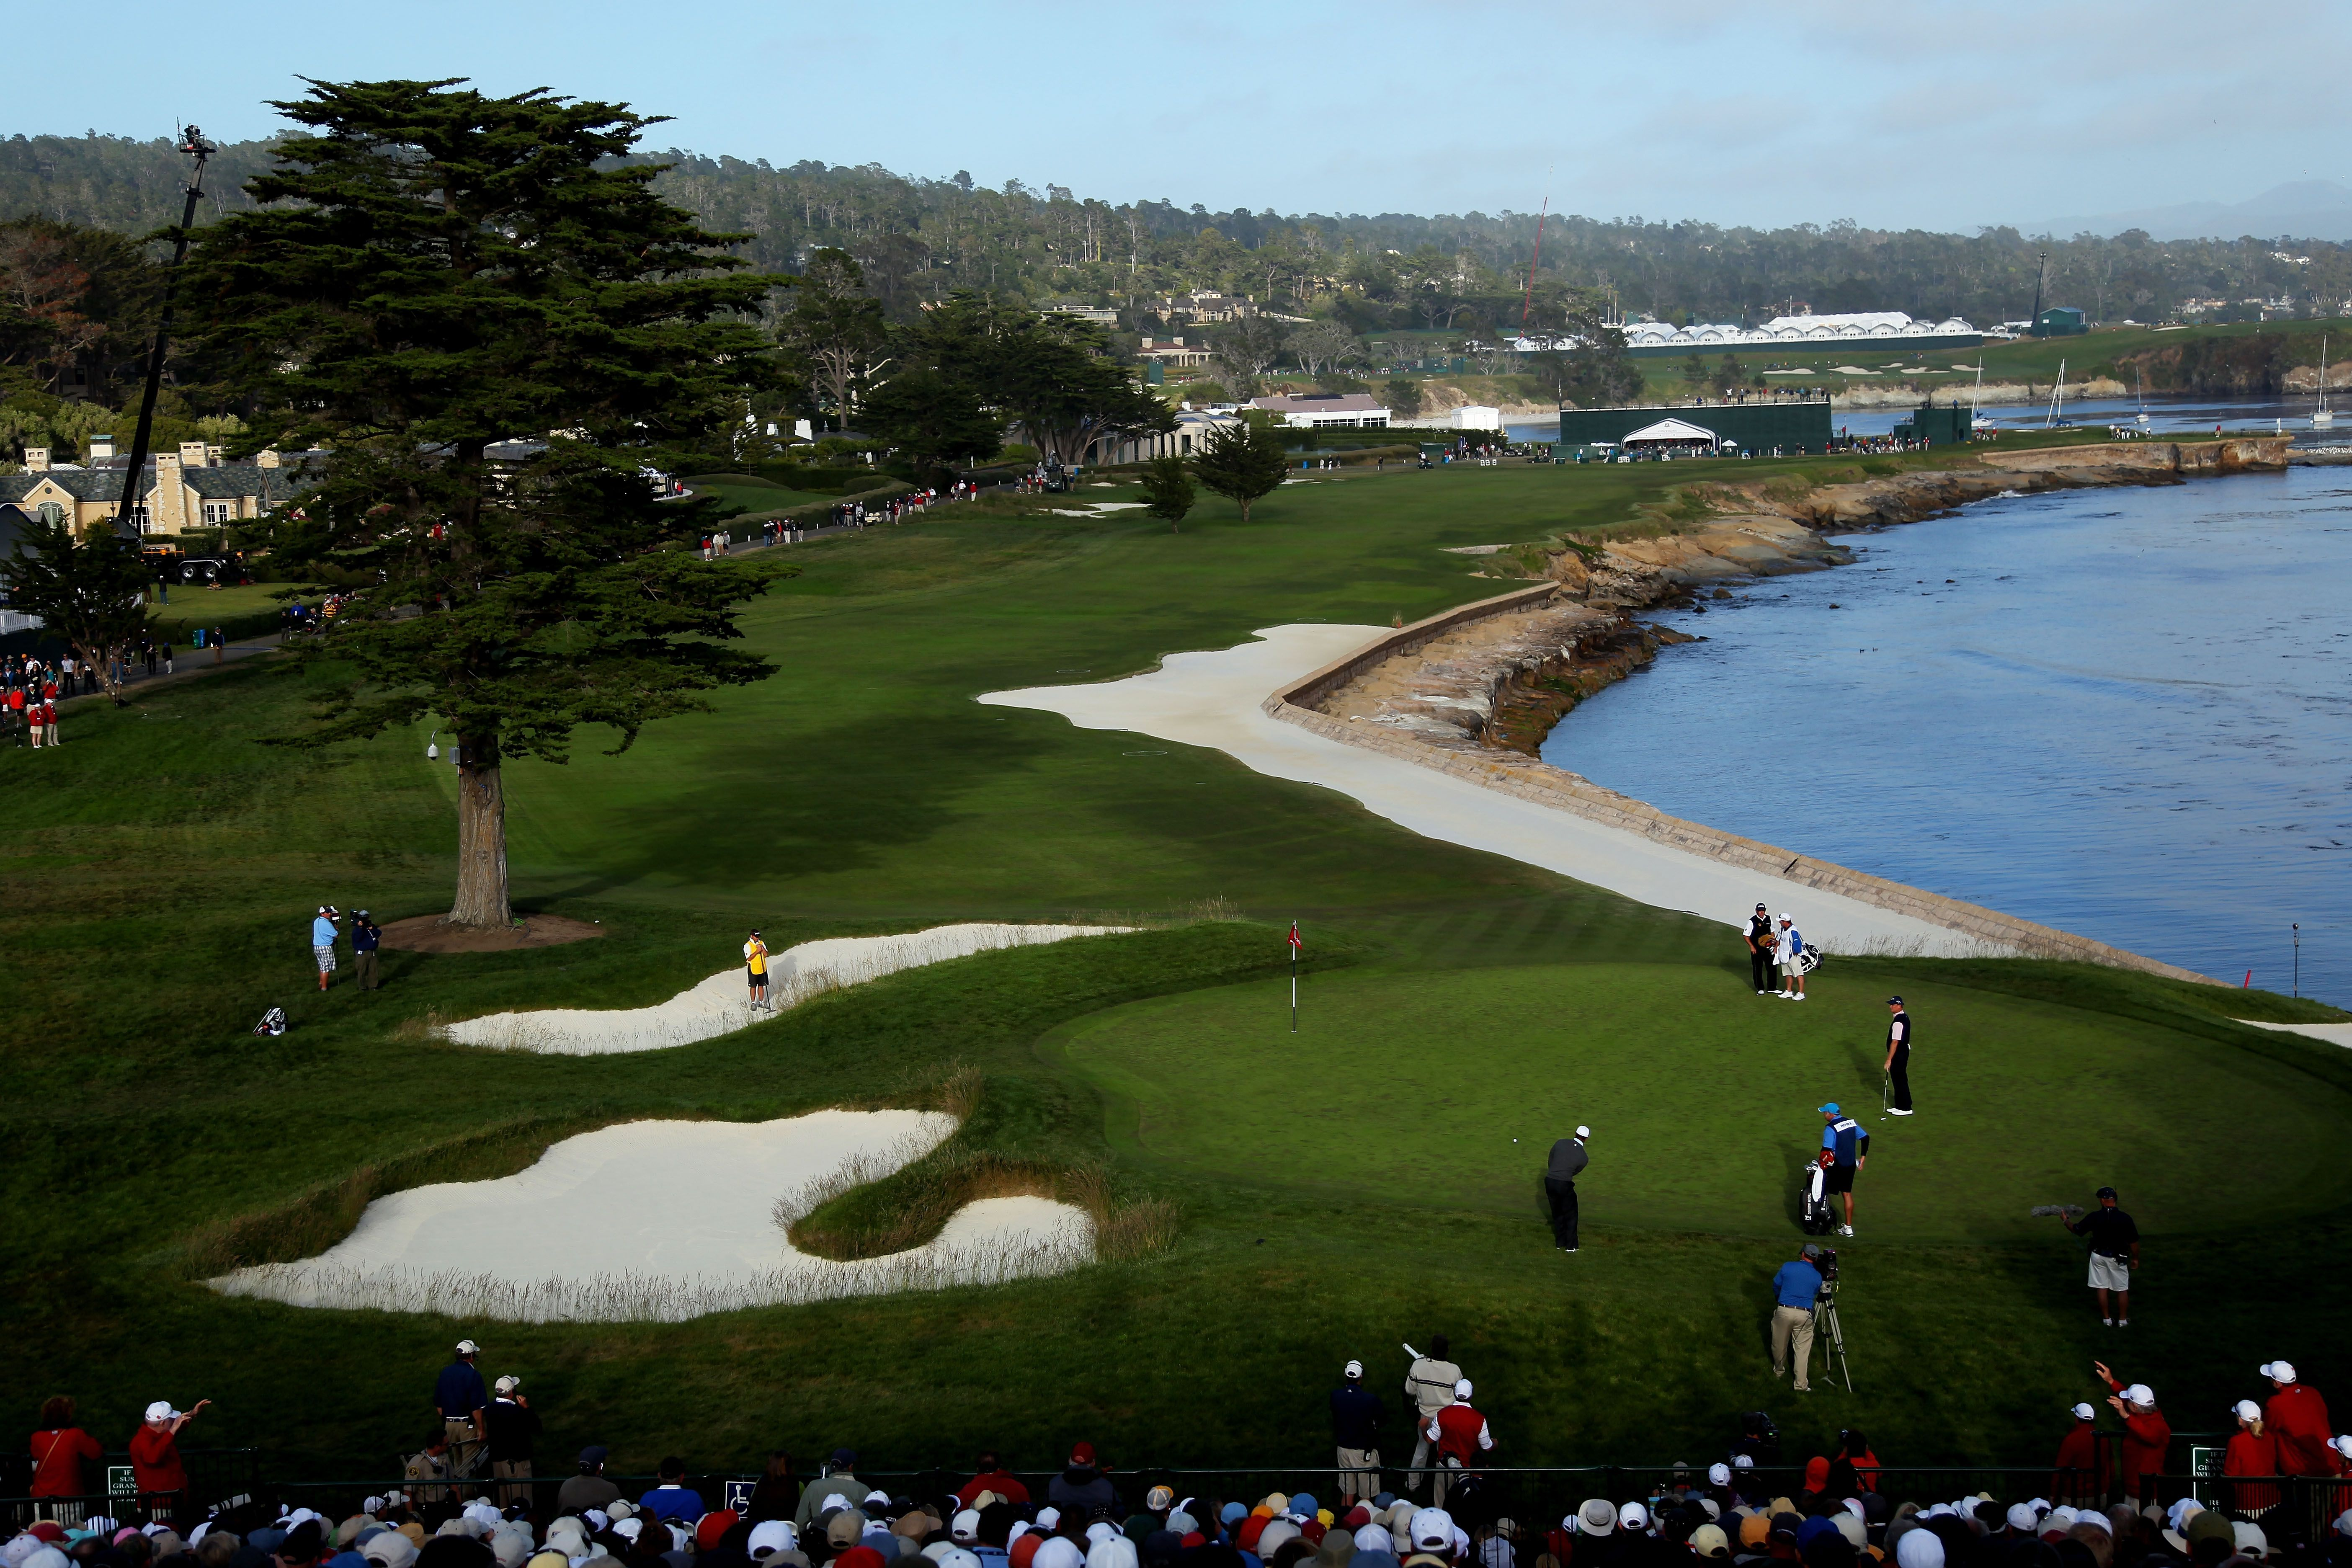 Pebble Beach Images and Facts About Famous Golf Links